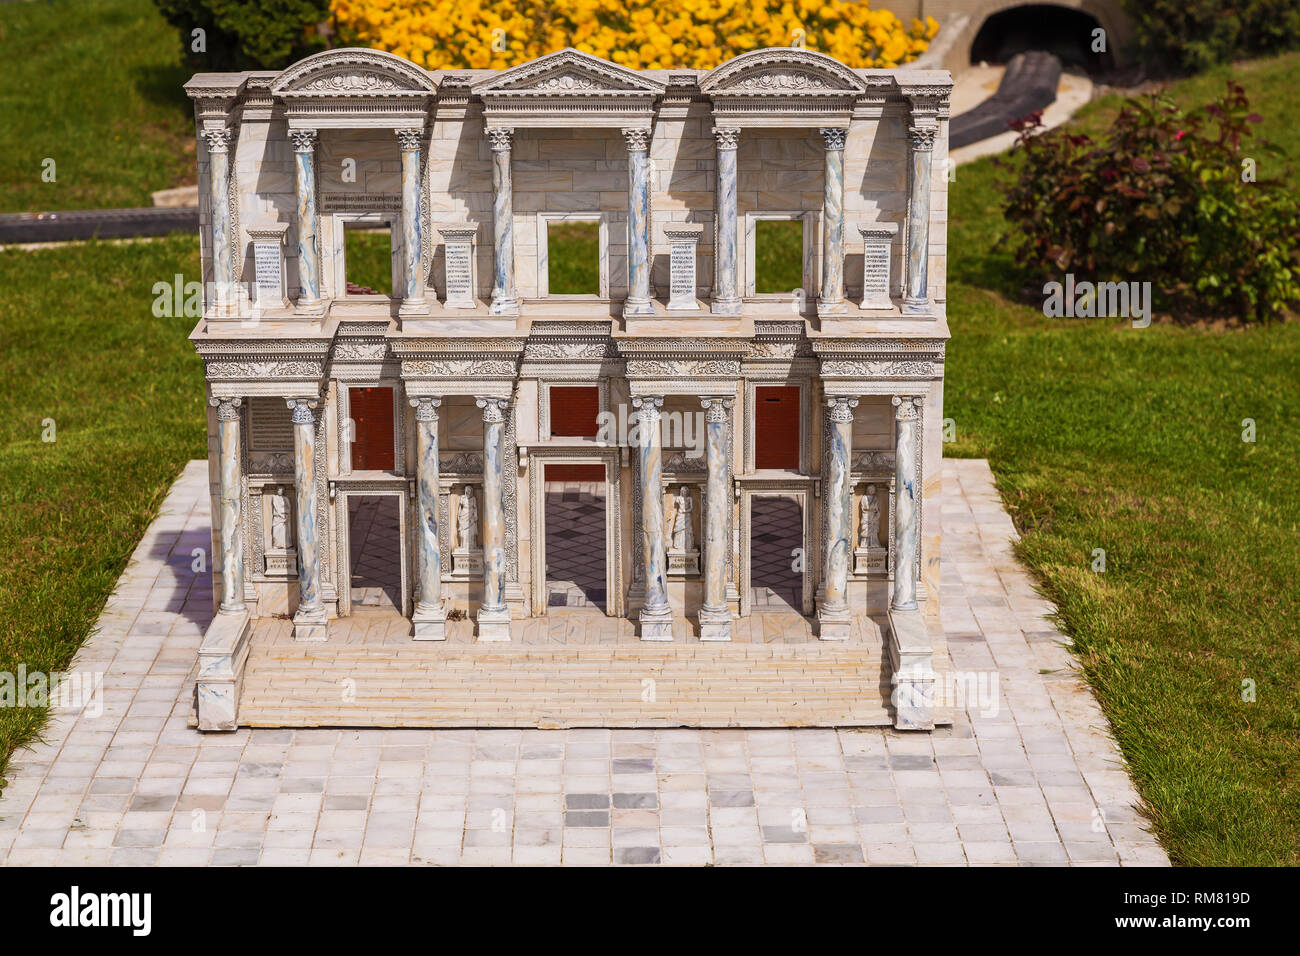 Turkey Istanbul April 18, 2018: Miniaturk park in istanbul, the largest miniature park in the world. The park contains 105 buildings, each replicated  - Stock Image